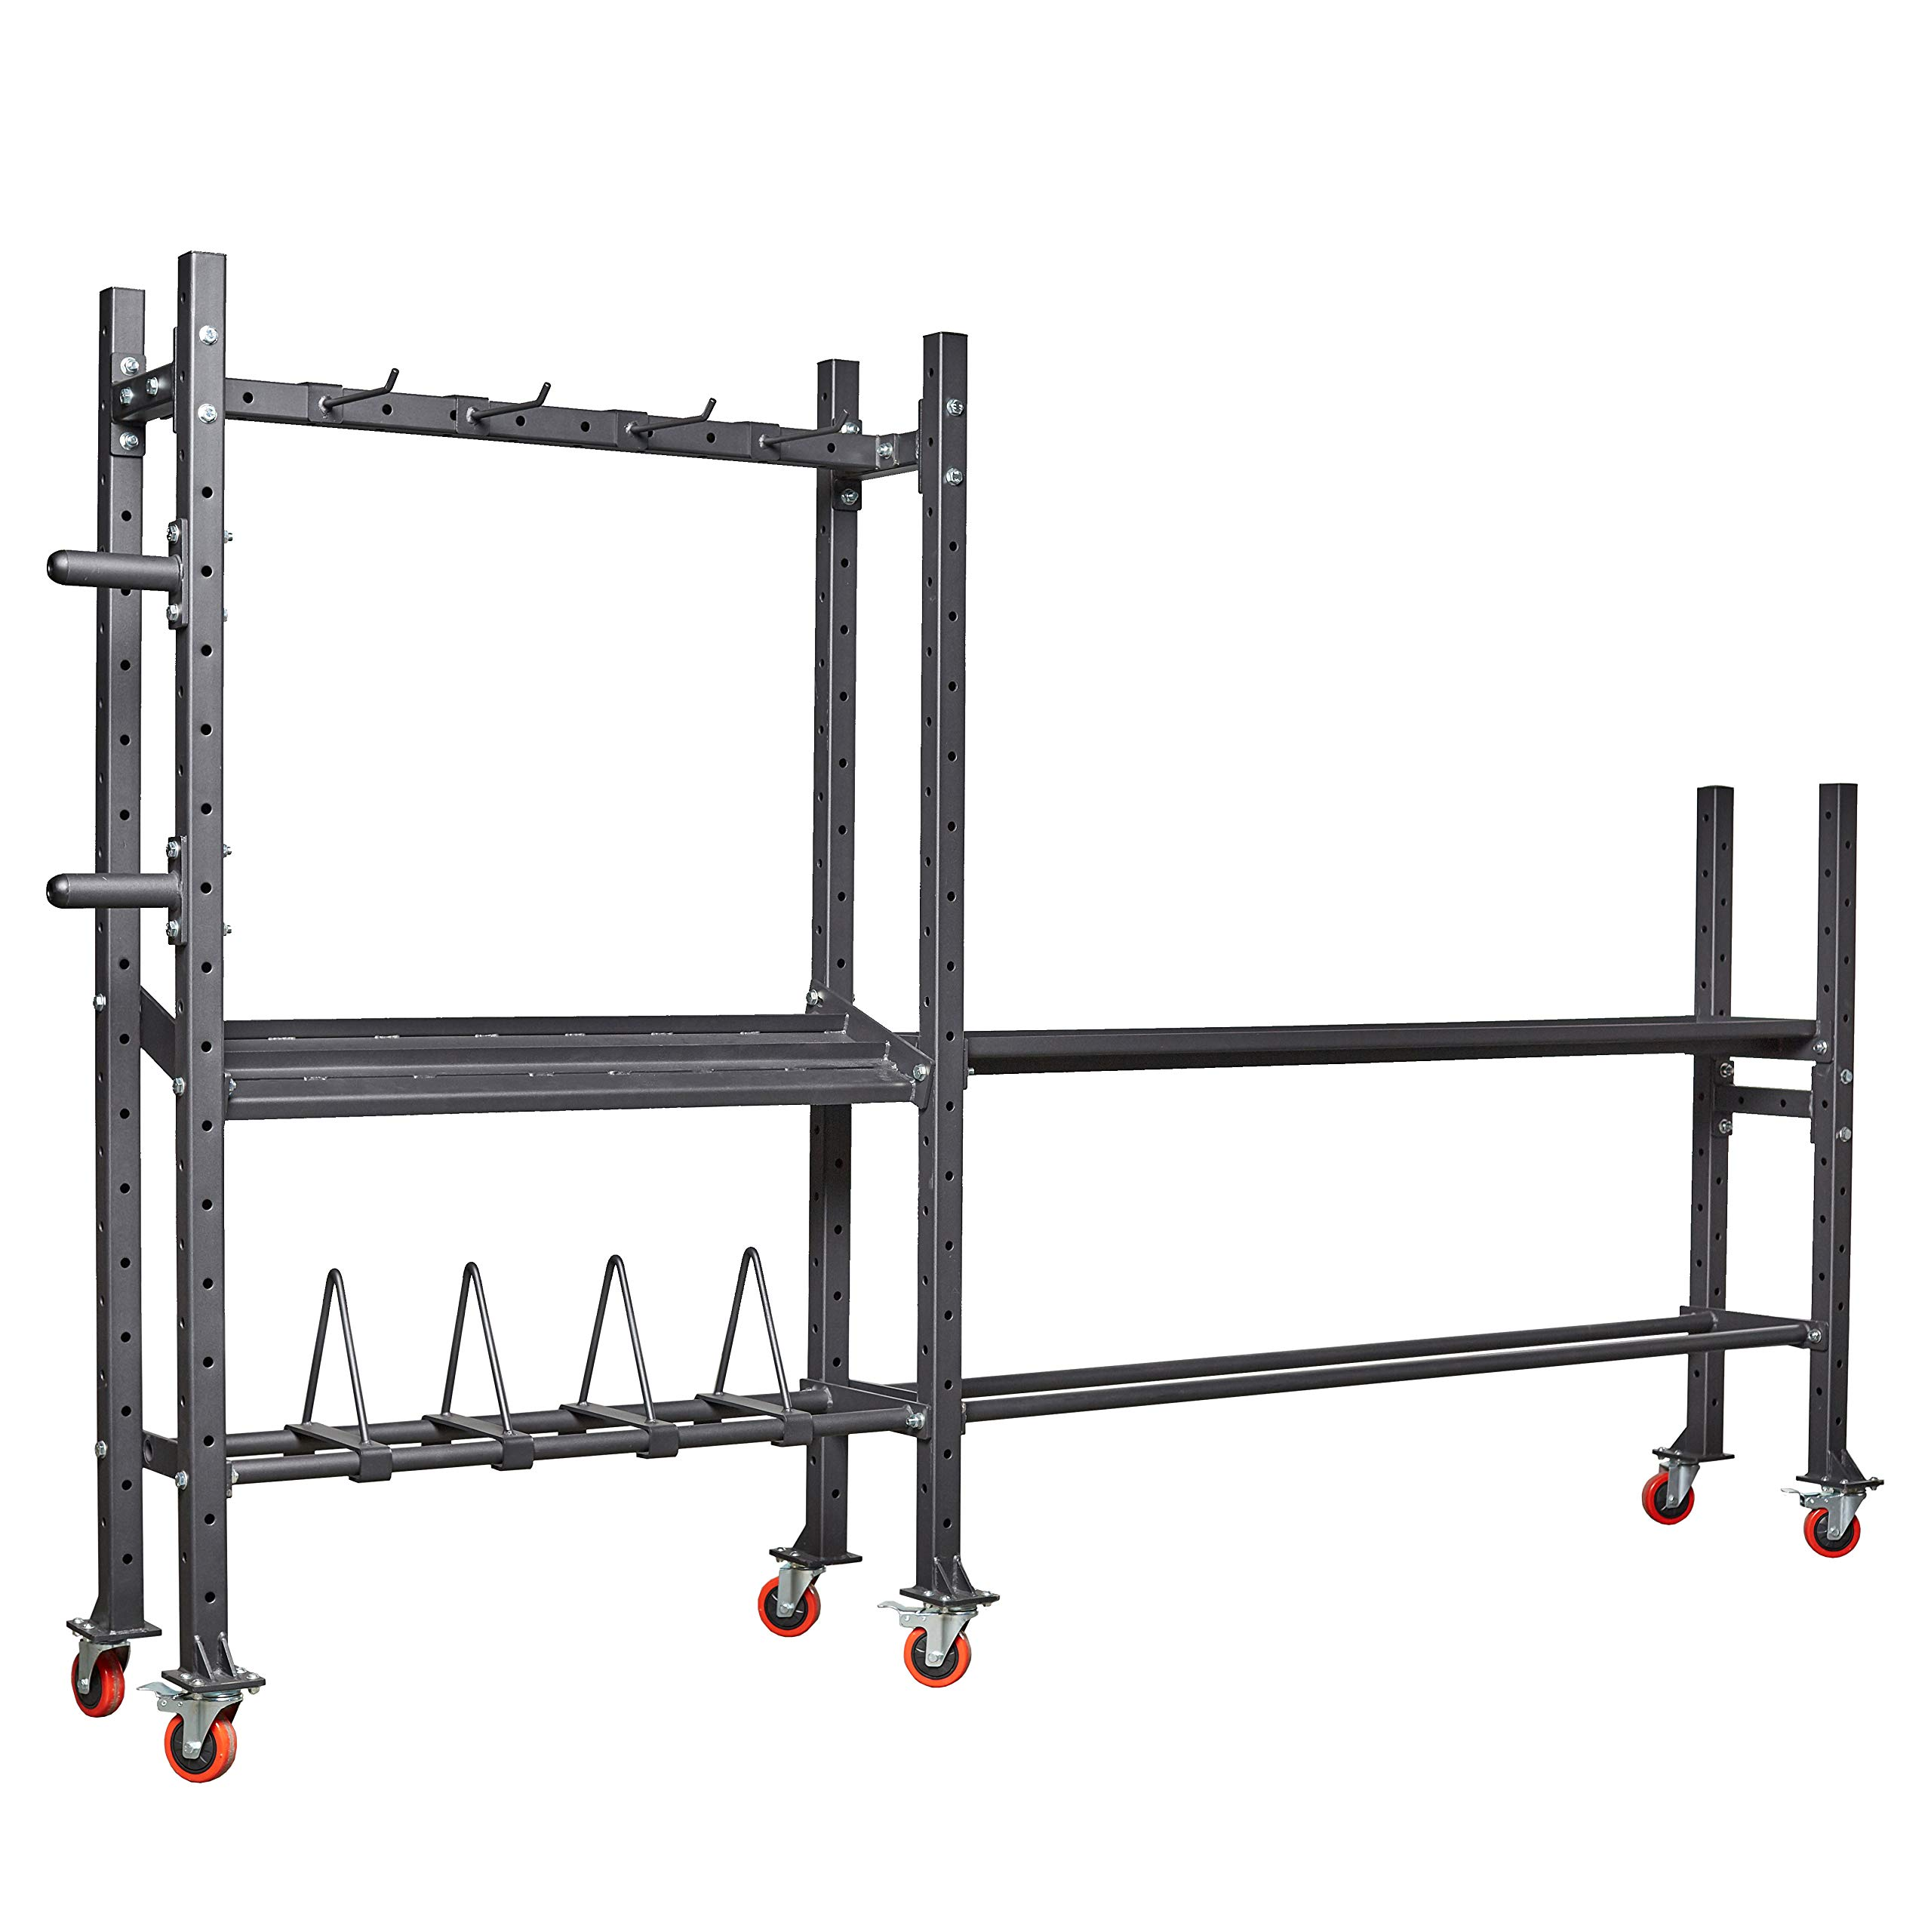 REP Modular Storage System - MSS2 by Rep Fitness